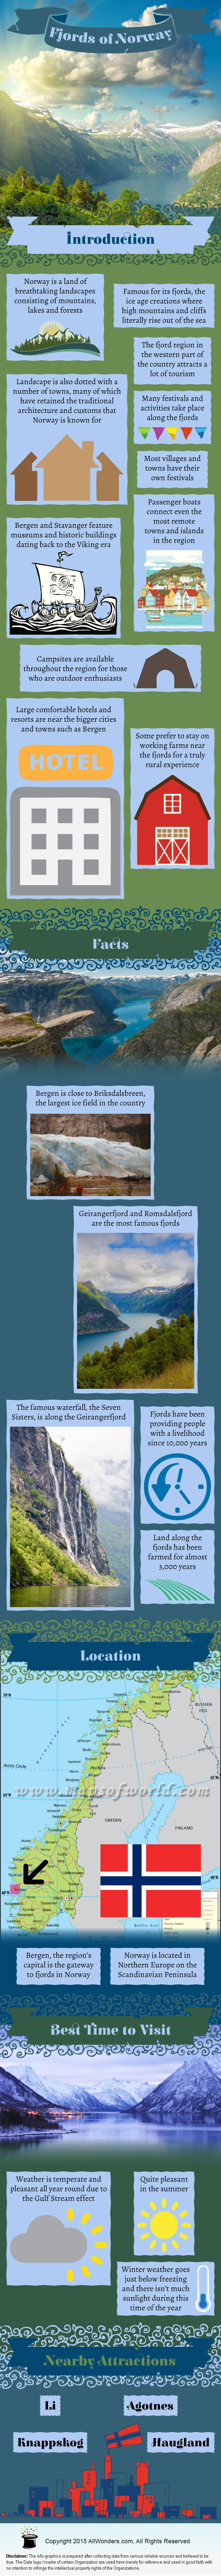 Fjords of Norway - Facts & Infographic